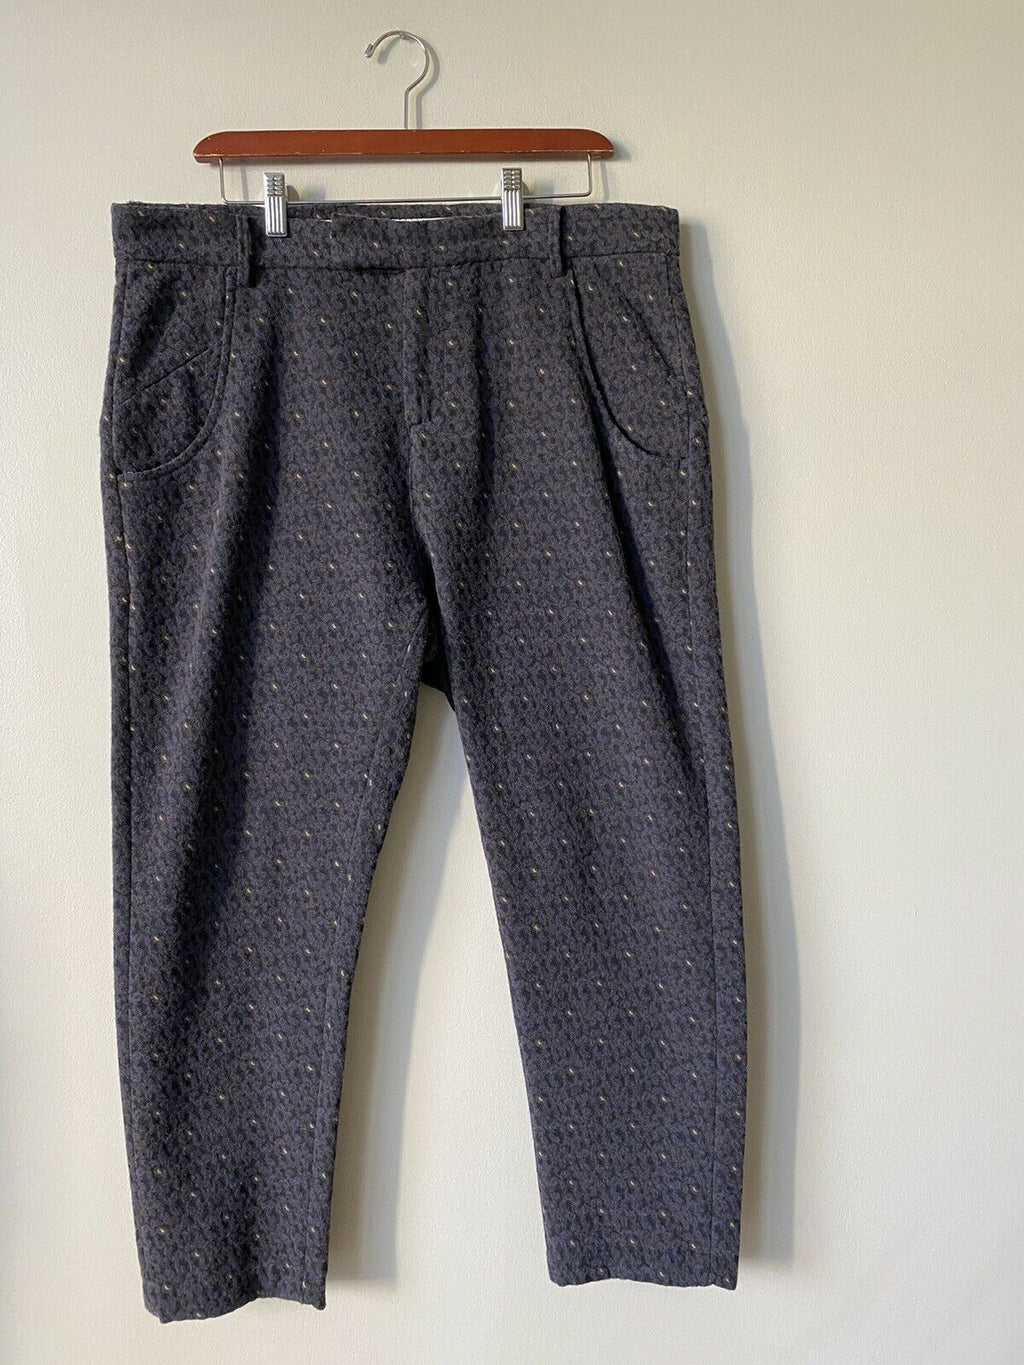 November Women's Size 31 Navy Blue Trousers Brocade Wool Slim Fit Mairi Pants